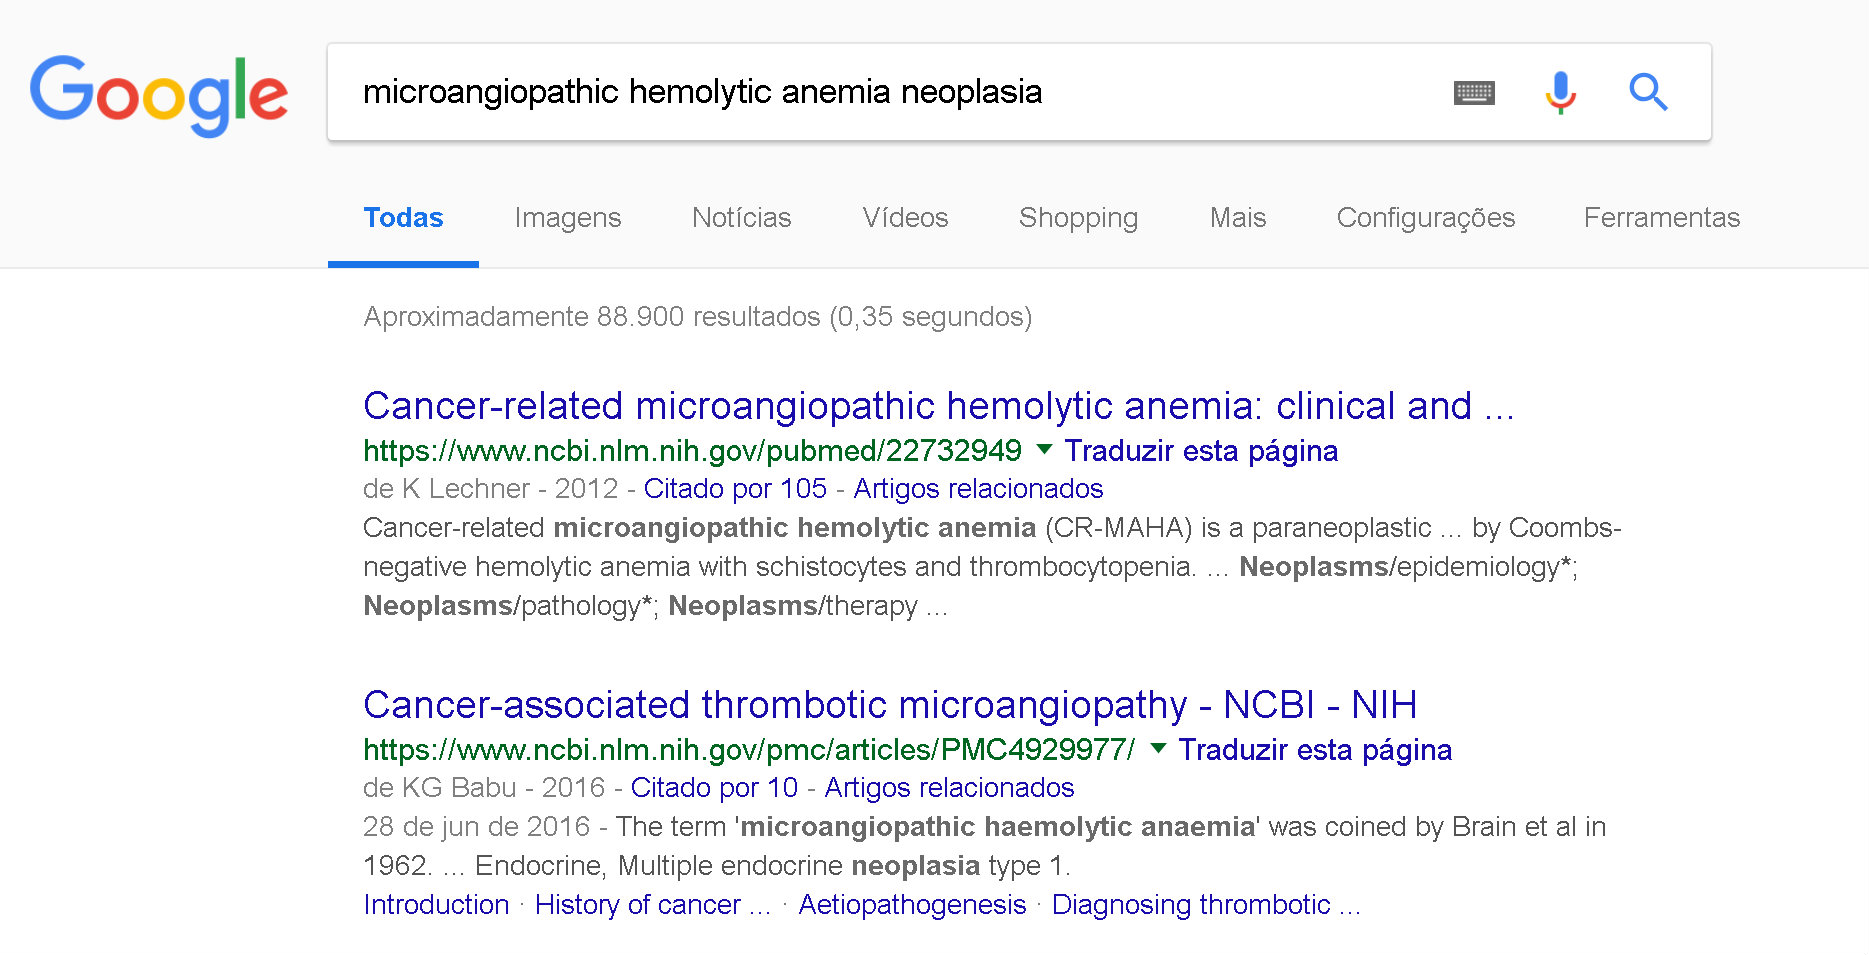 Google - Anemia microangiopática - wicked problems